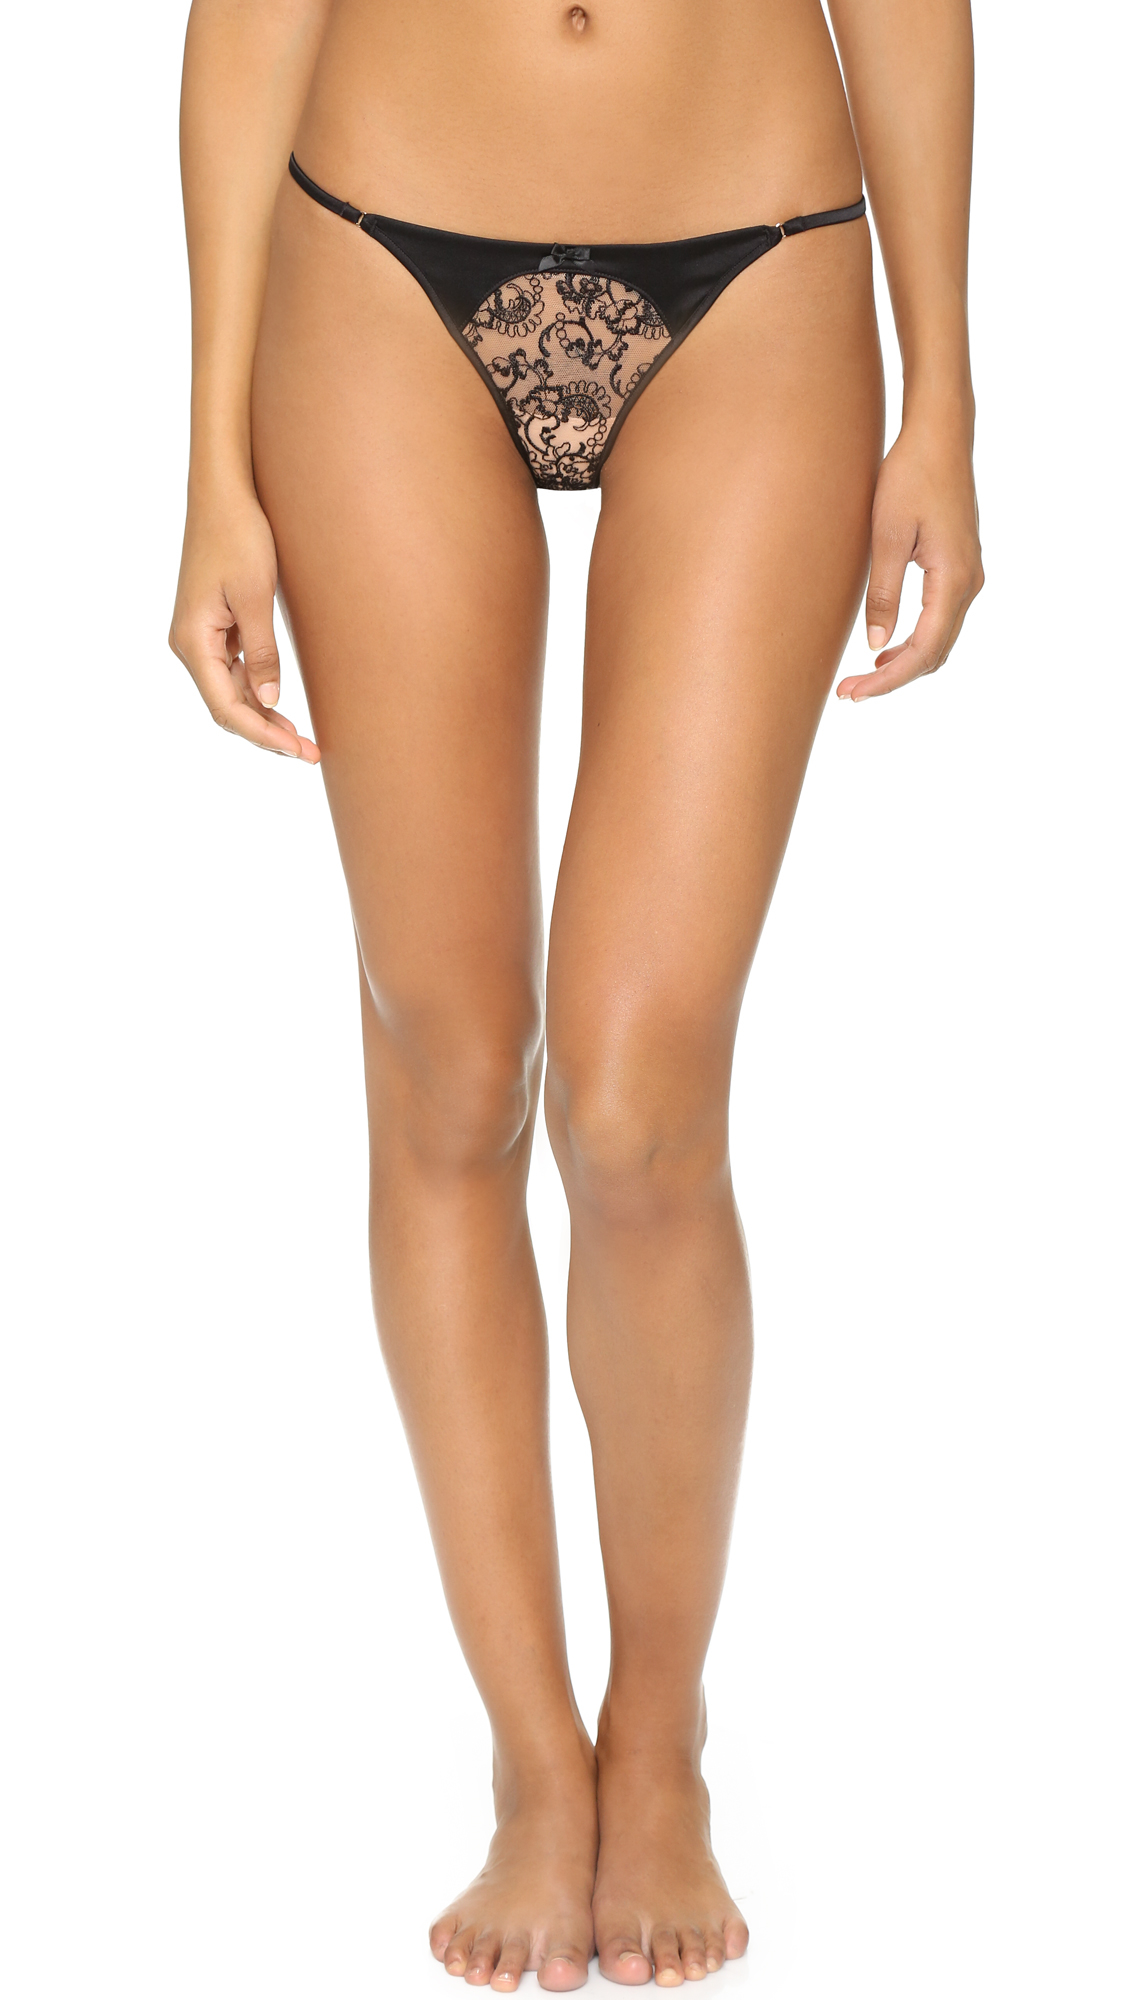 Myla House Silk & Embroidery Thong in Black